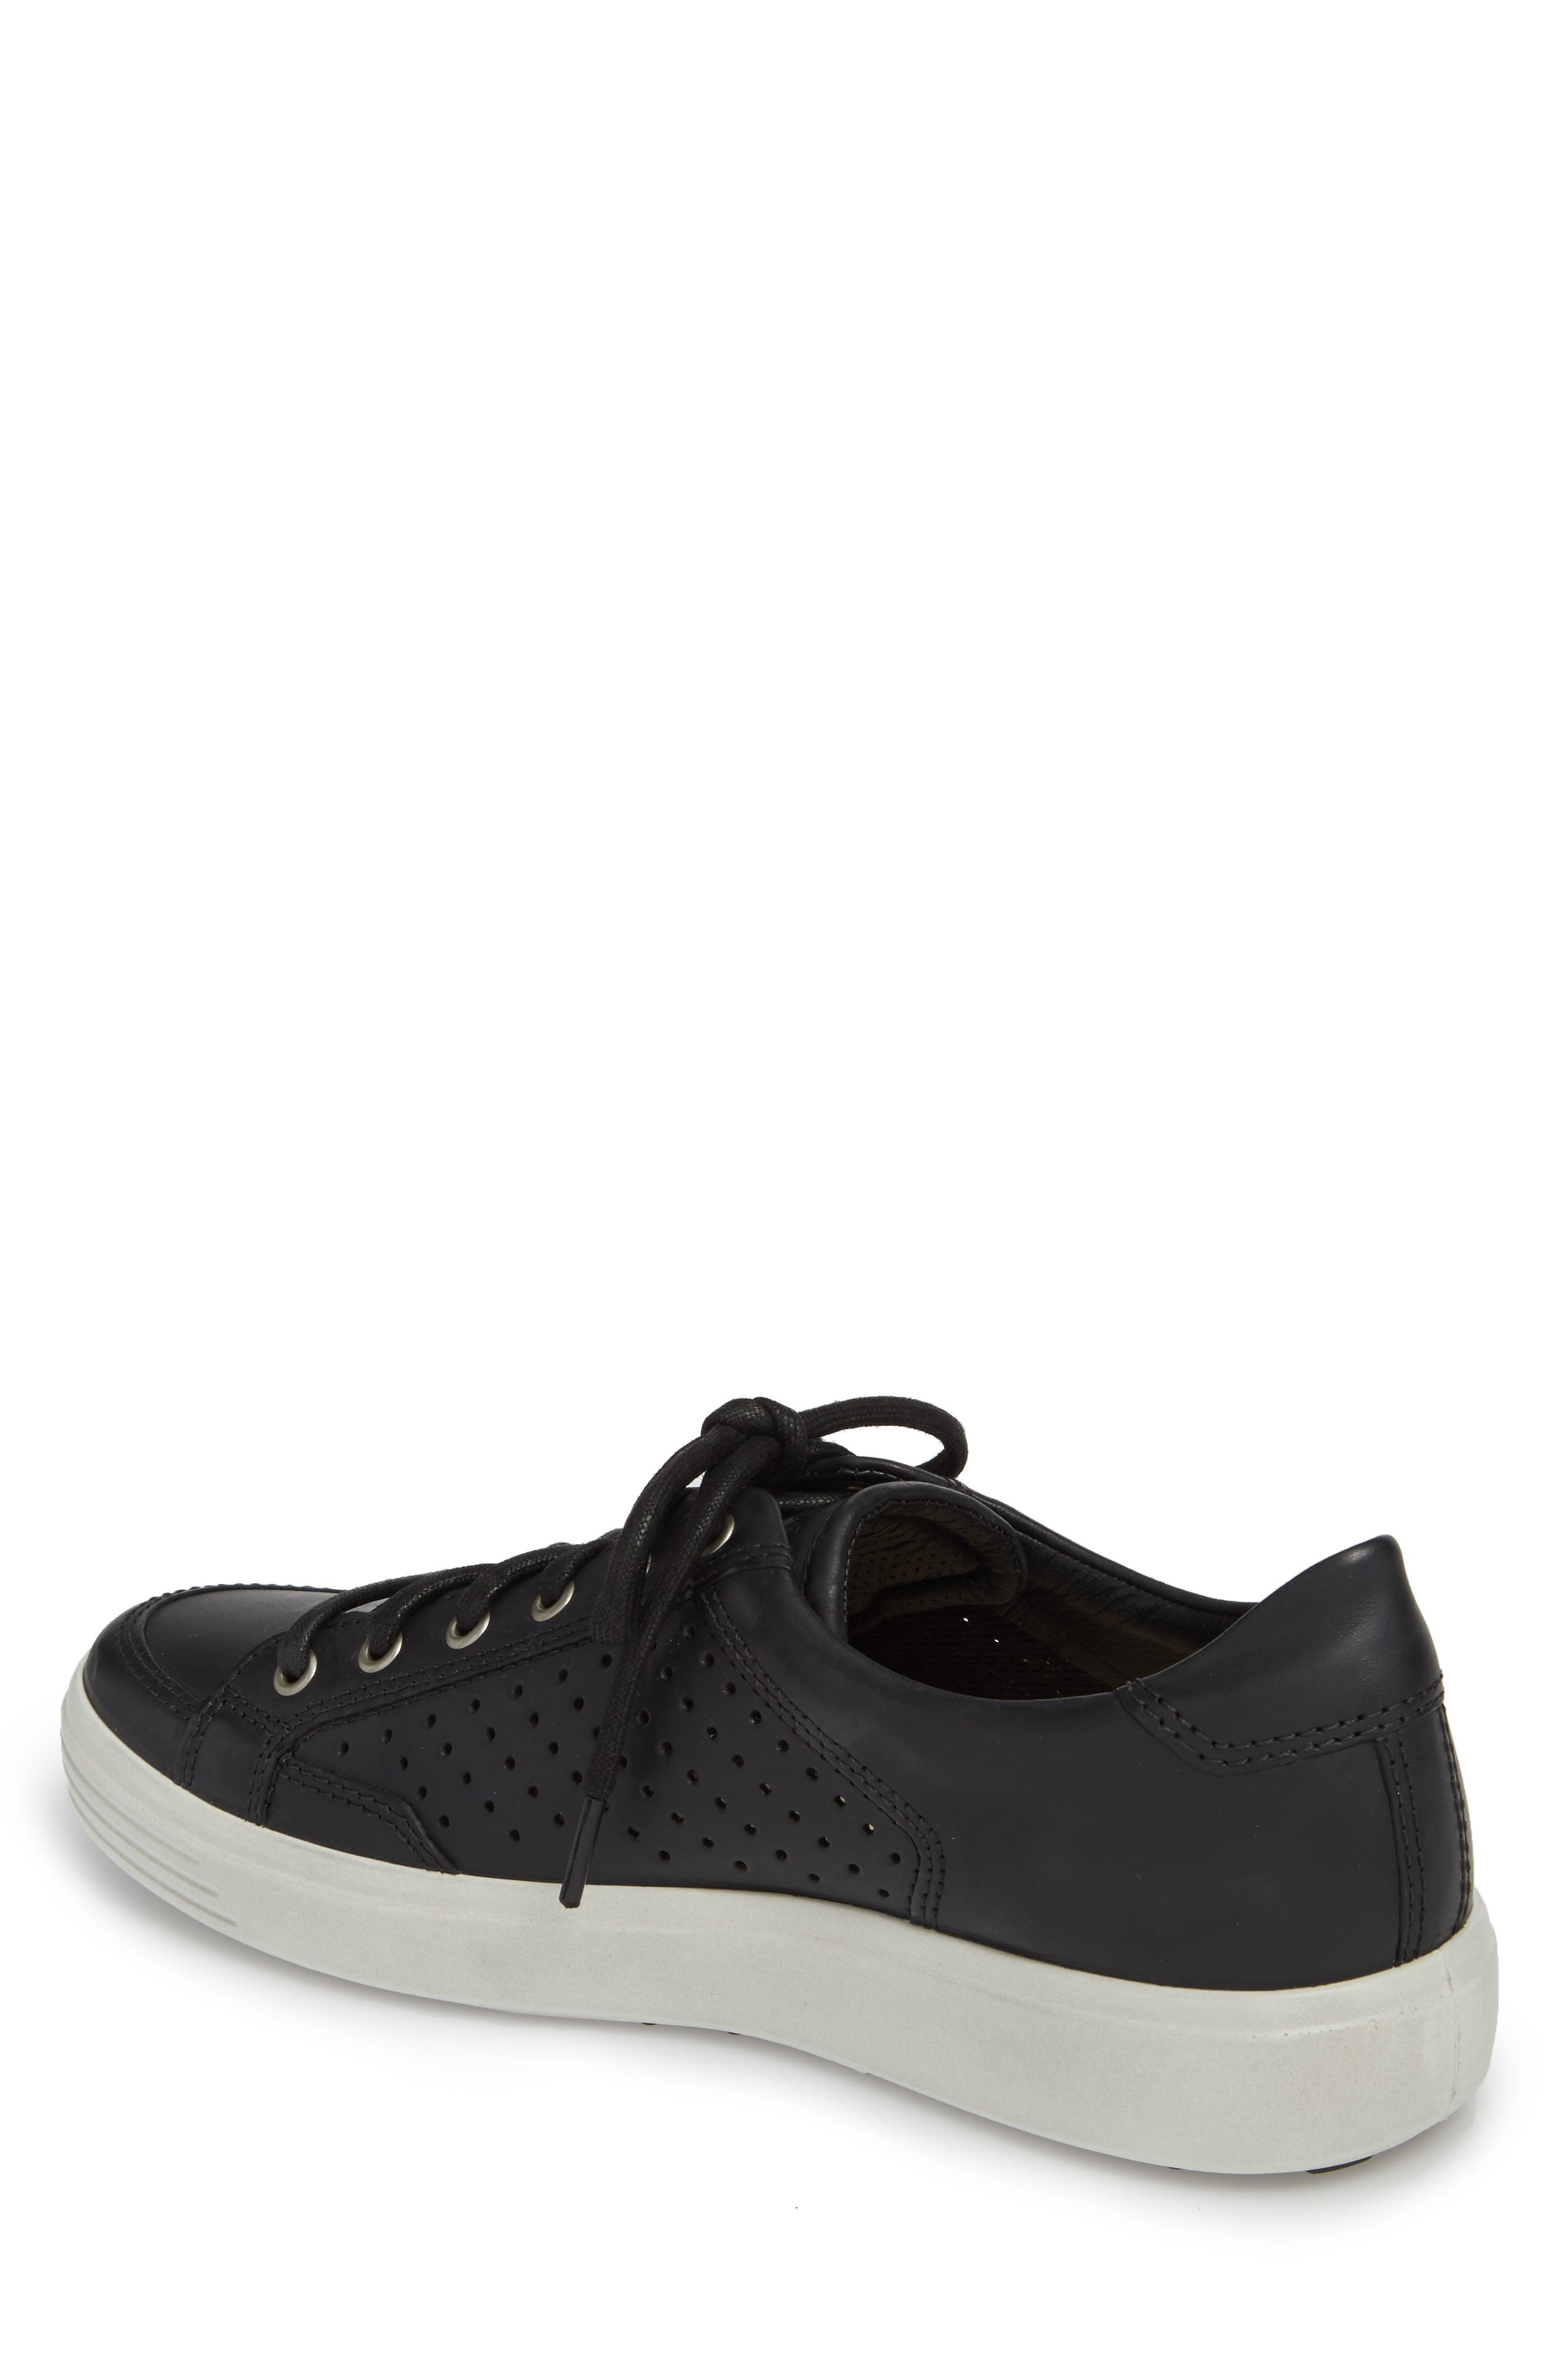 Soft 7 Retro Perforated Low Top Sneaker,                             Alternate thumbnail 2, color,                             Black Leather